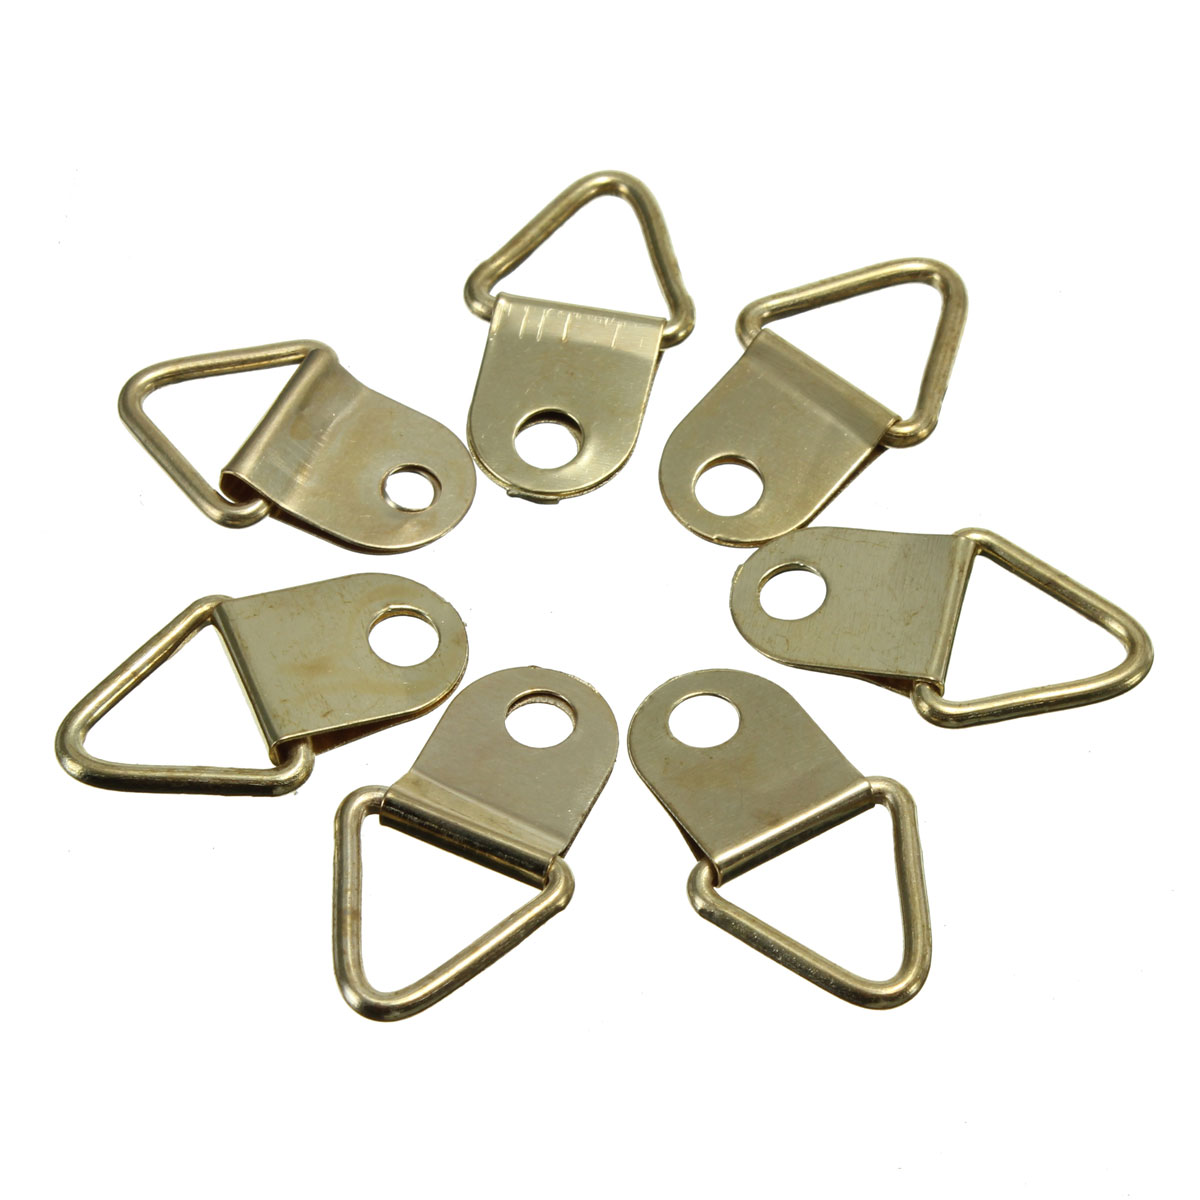 50x Gold Picture Photo Frame Hanging Triangle D Ring Strap Hangers ...